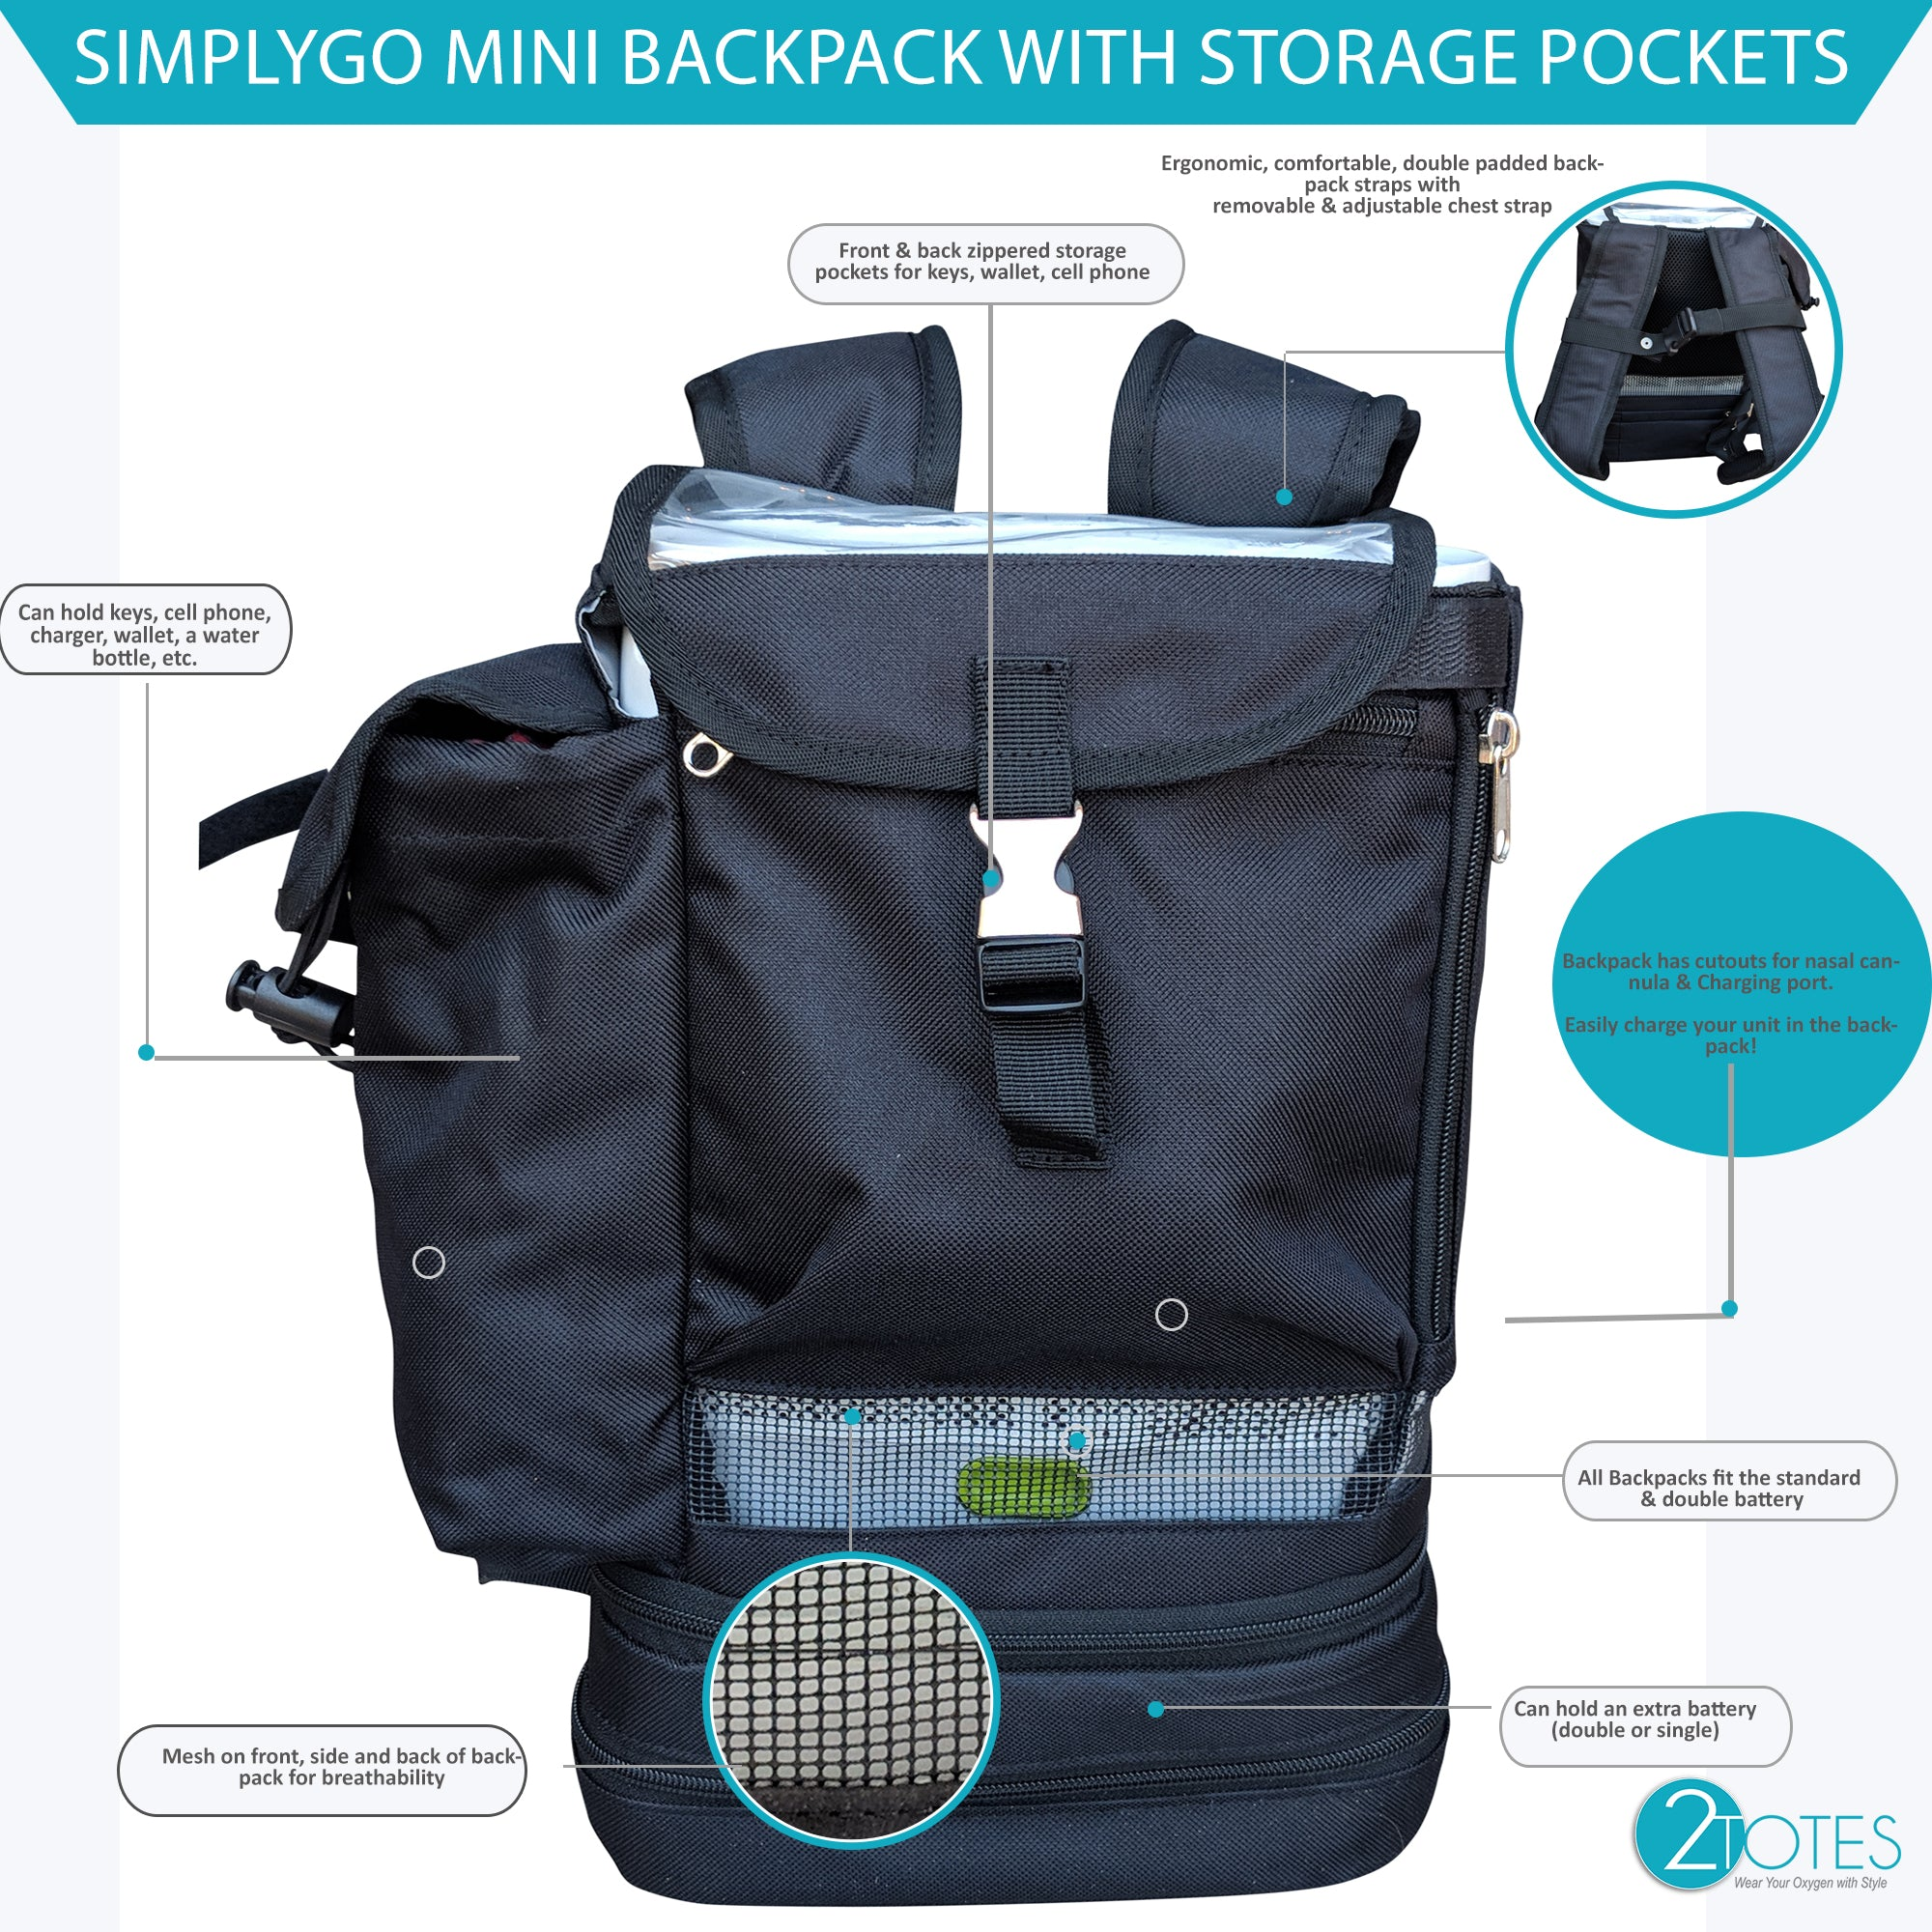 SimplyGo Mini Backpack in black - O2TOTES